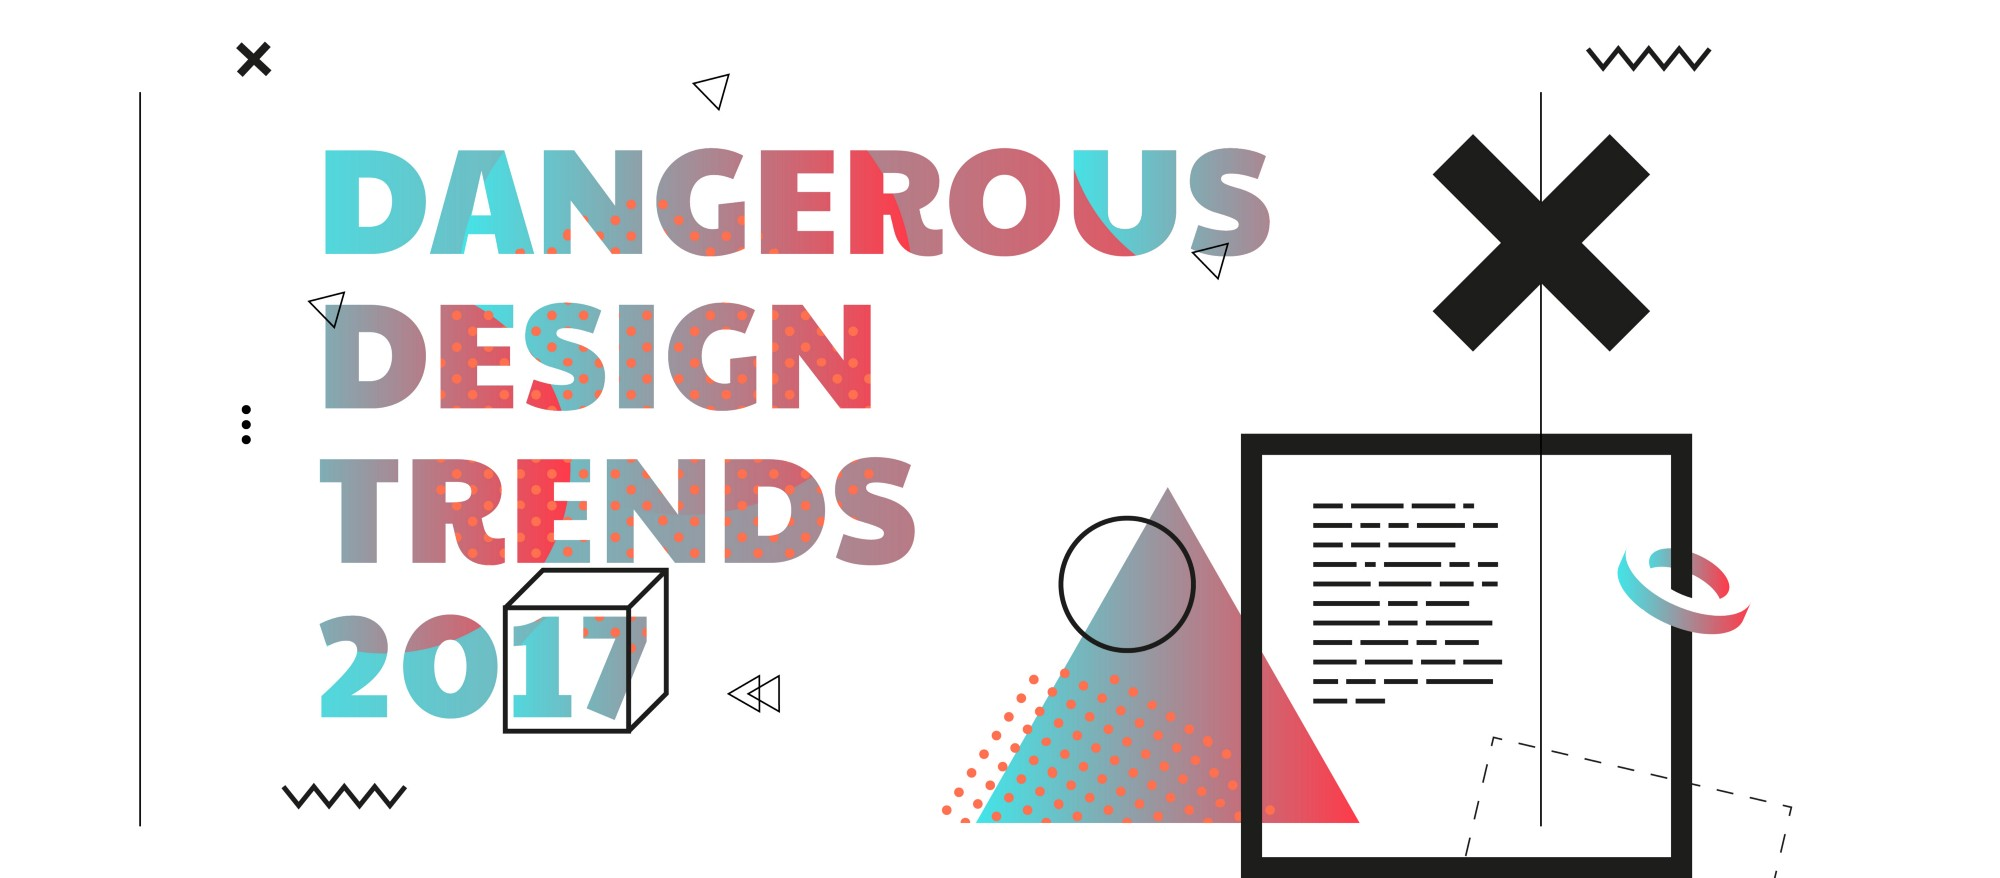 Trend Desain 2017 Dangerous Design Trends 2017 Muzli Design Inspiration